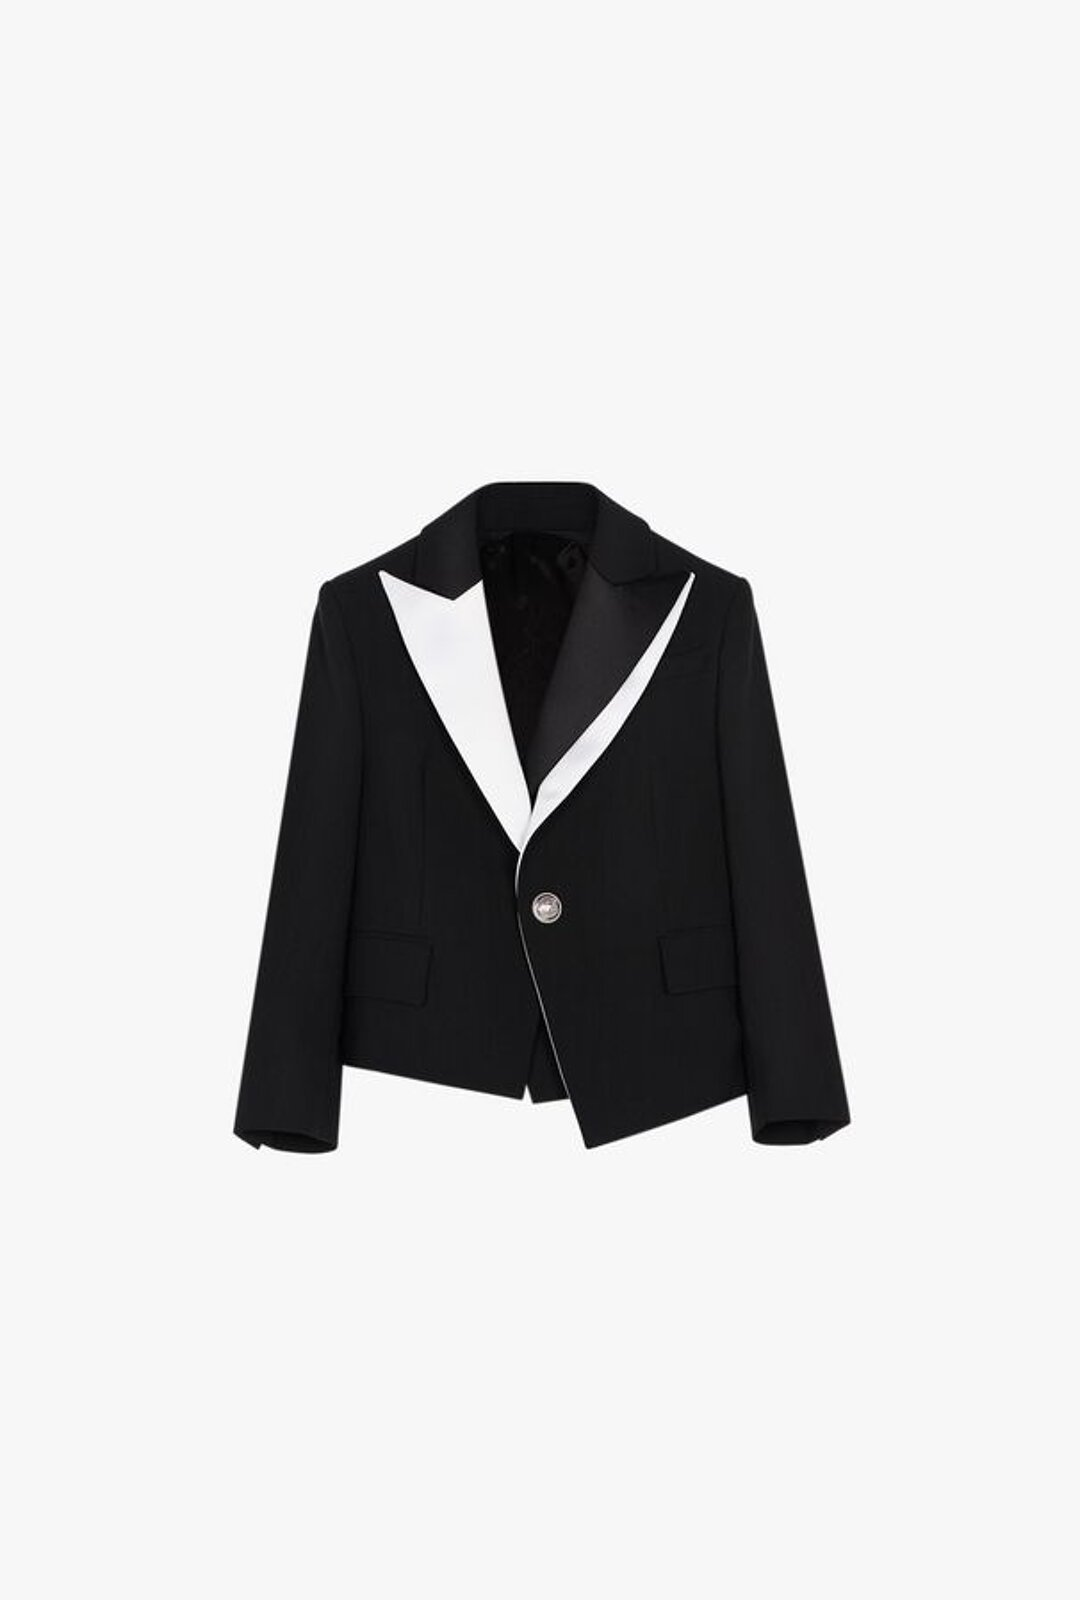 Double Breasted Black And White Wool Blazer - Balmain Junior